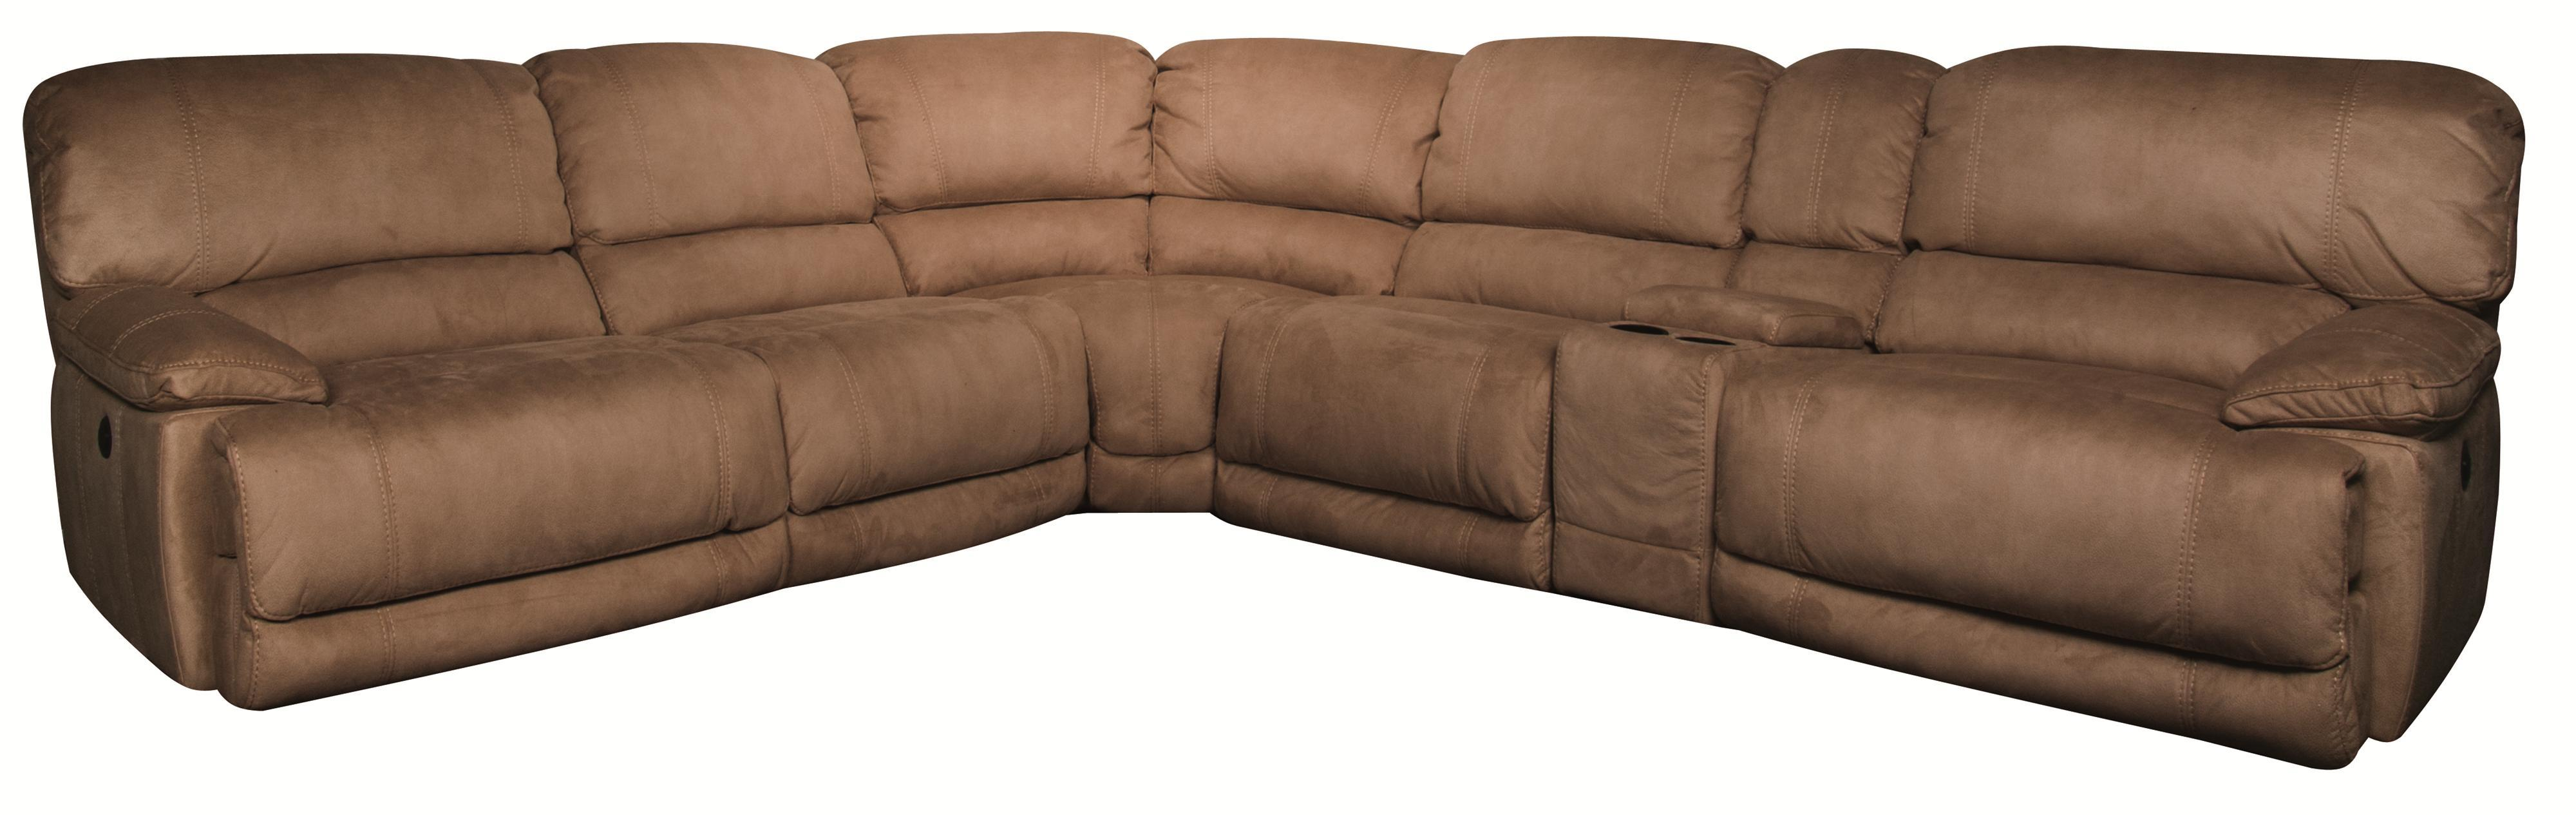 Morris Home Furnishings Sandra Sandra 6-Piece Power Sectional - Item Number: 134869899